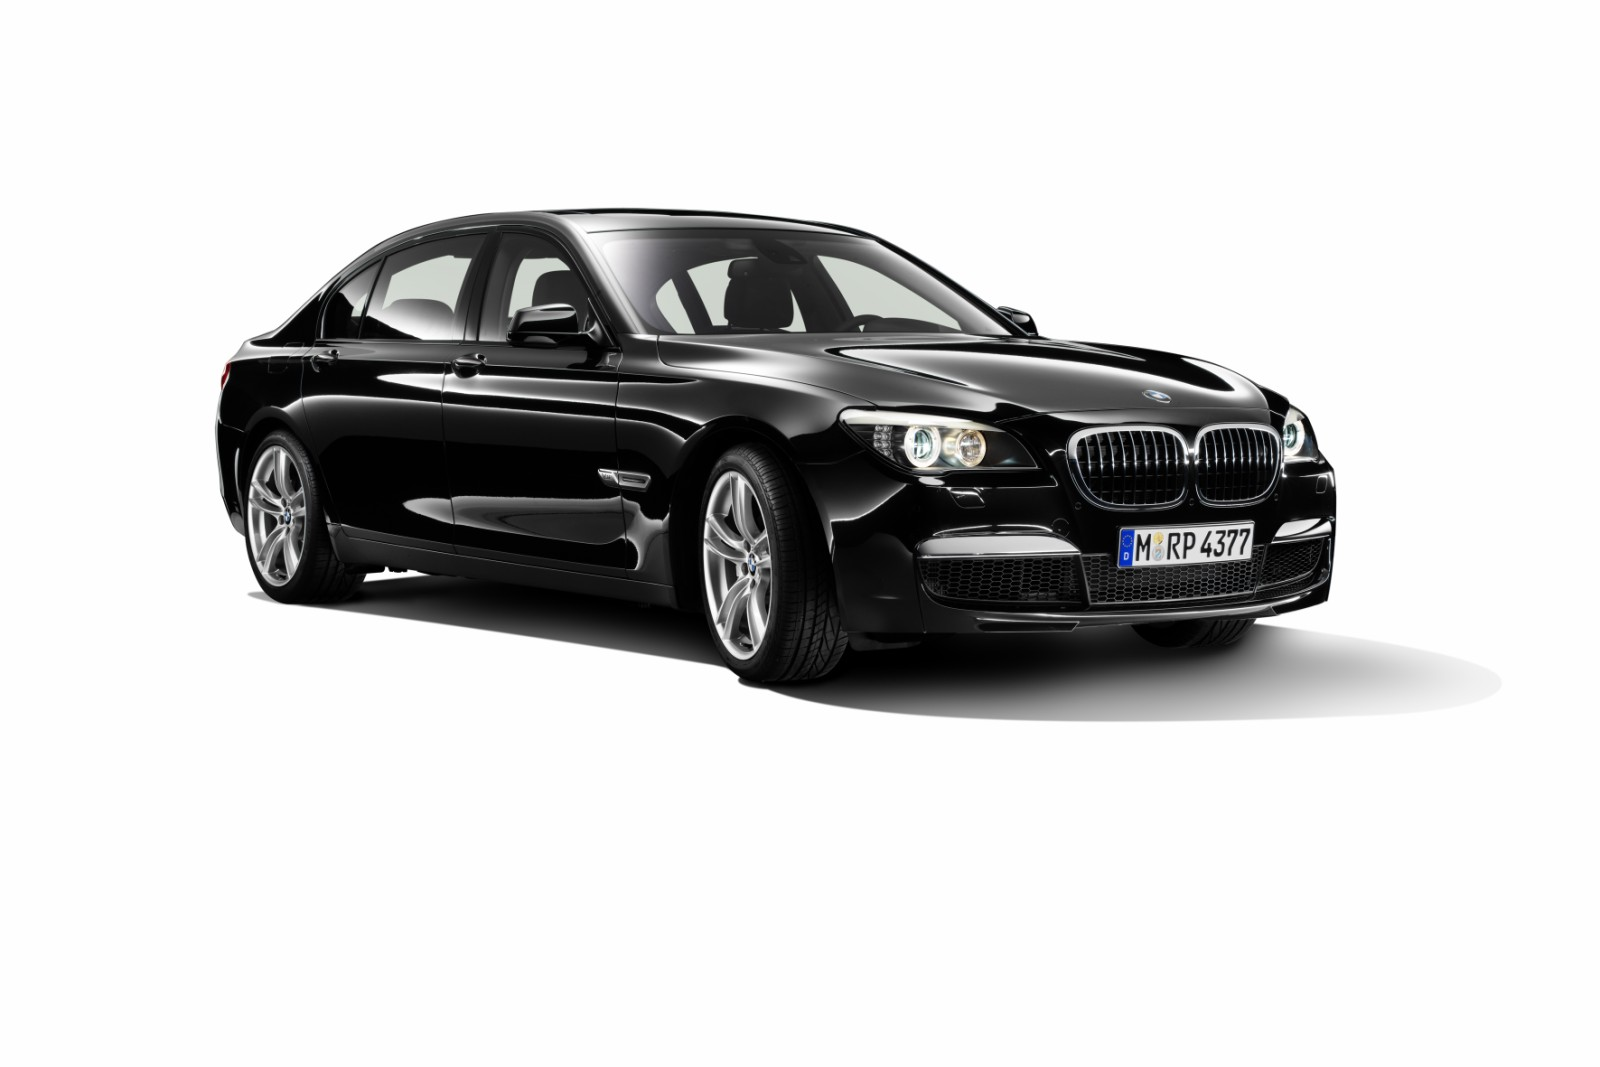 bmw 750li xdrive-pic. 3